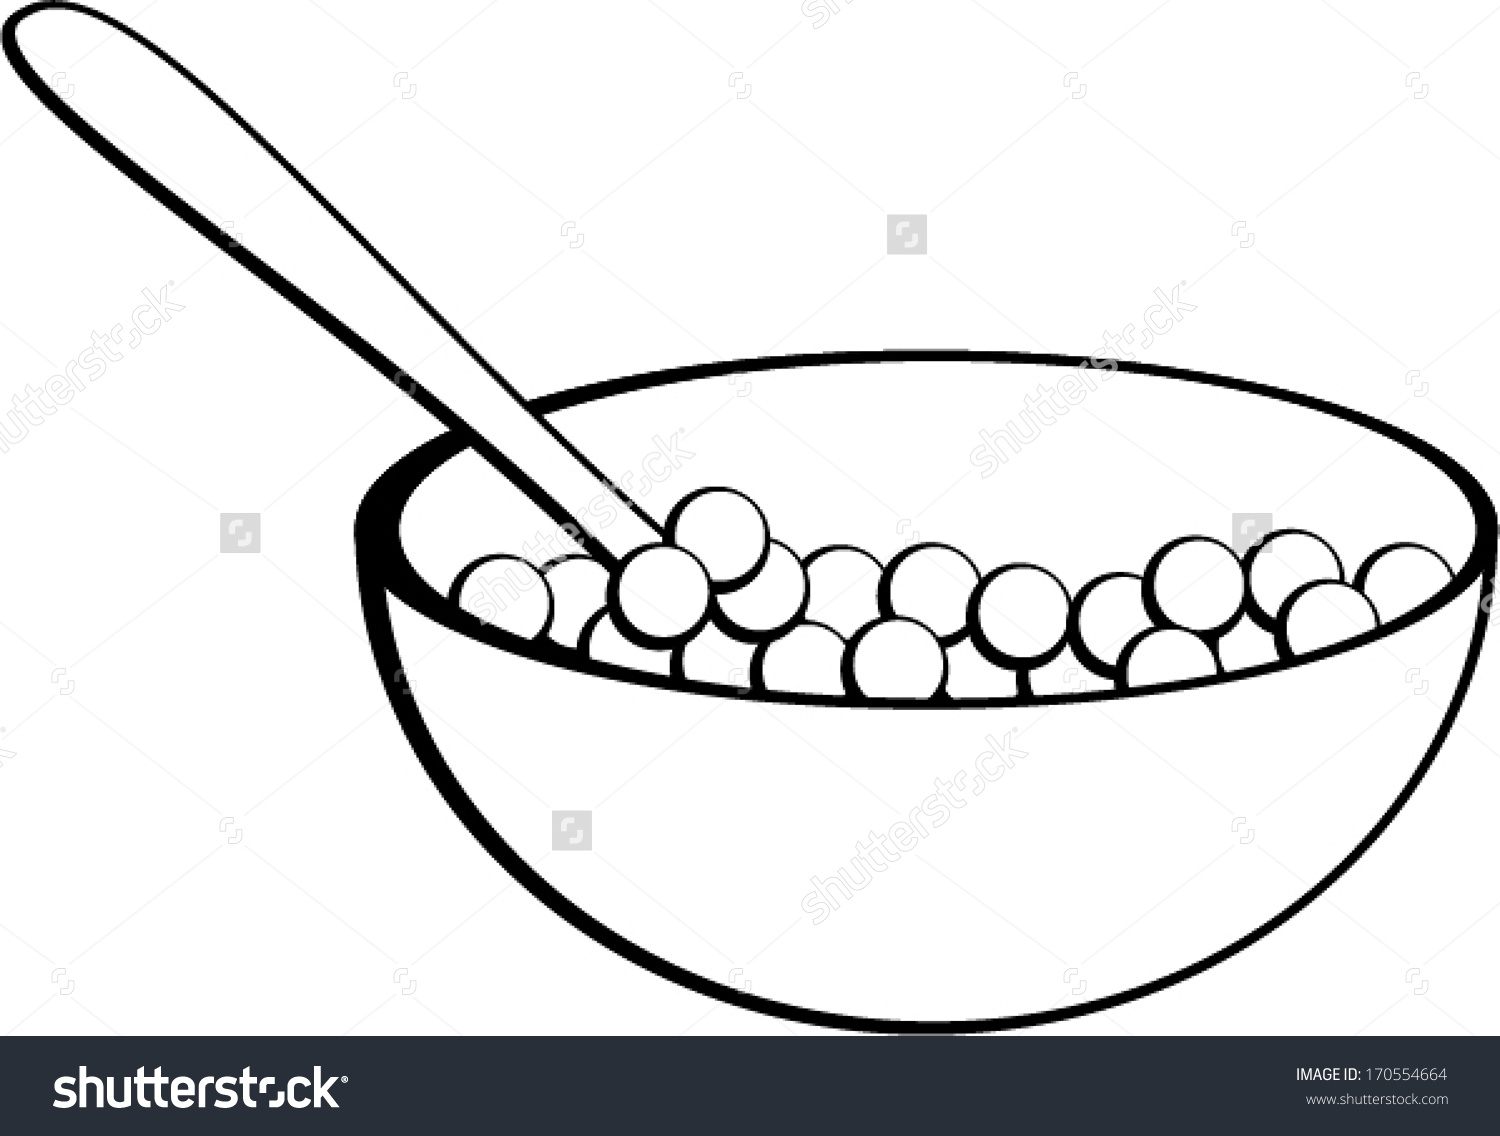 Pictures Of Cereal In A Bowl.